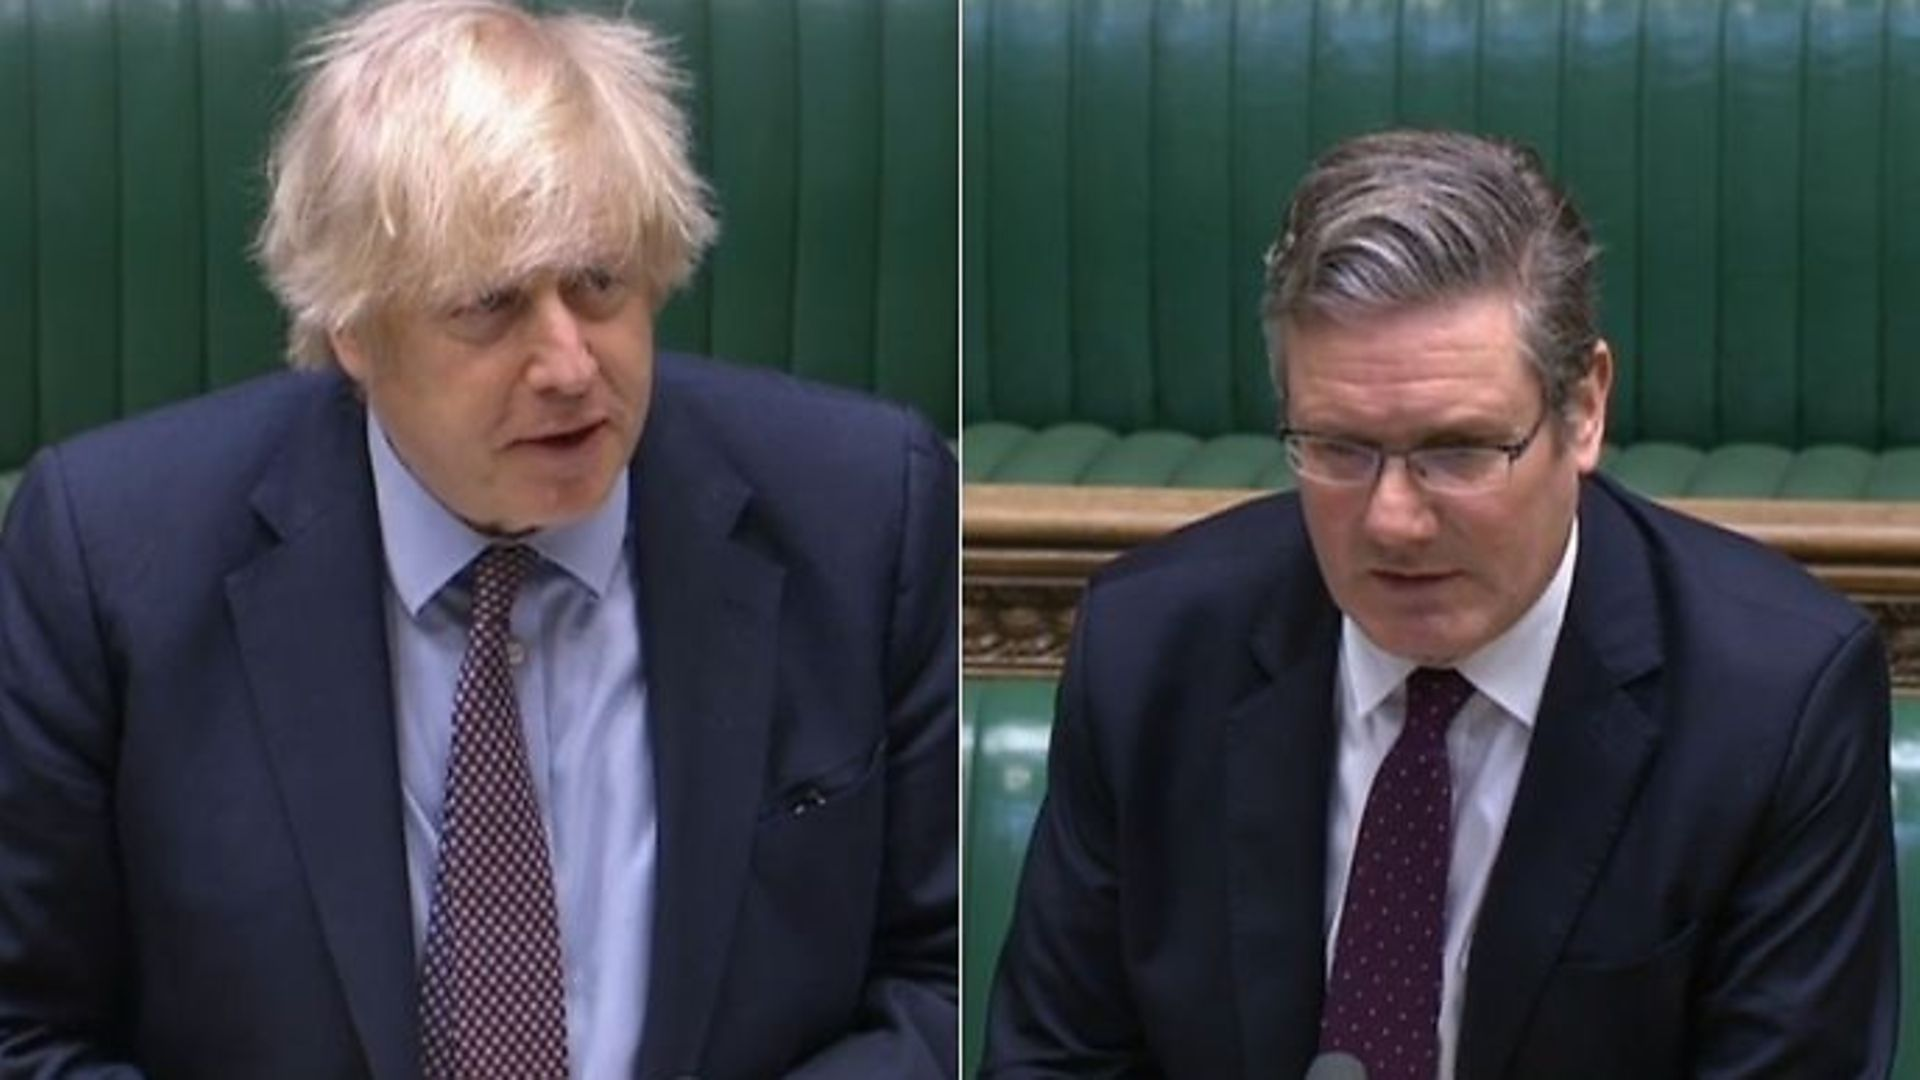 Boris Johnson (L) and Sir Keir Starmer in the House of Commons - Credit: Parliamentlive.tv